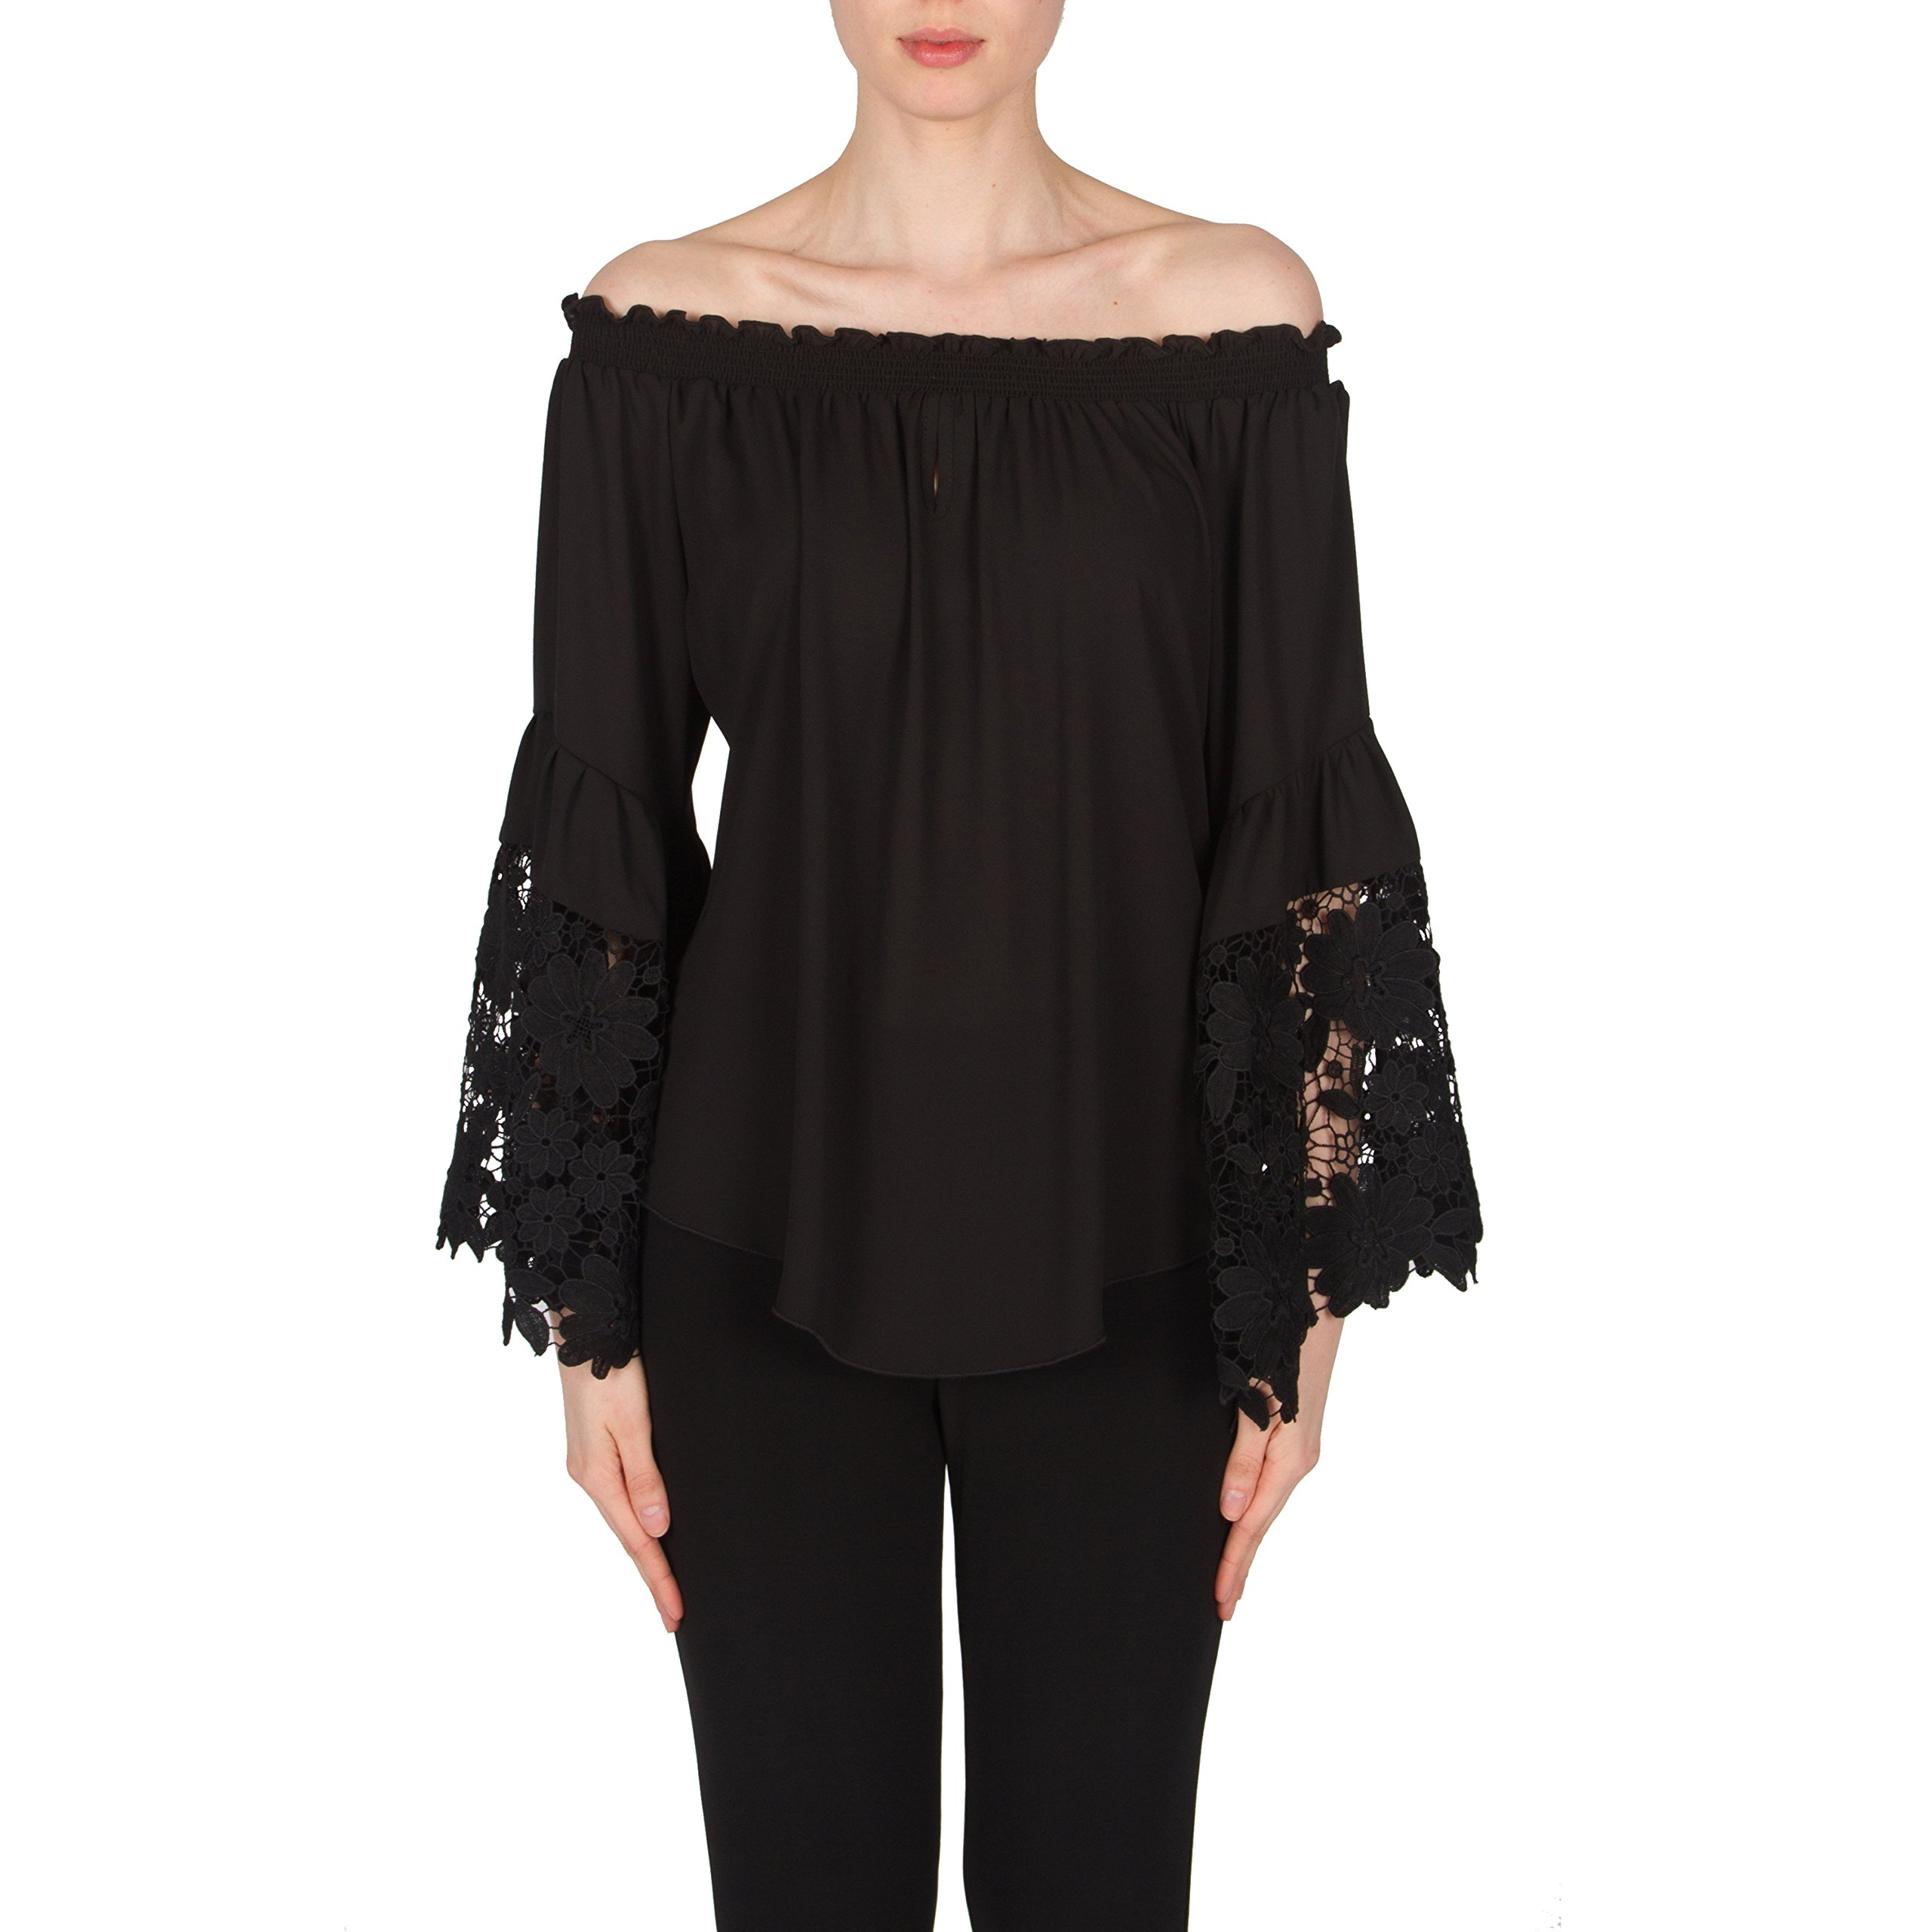 Joseph Ribkoff Black On/Off Shoulder Lace Bell Sleeve Top Style 173286 - Size 16